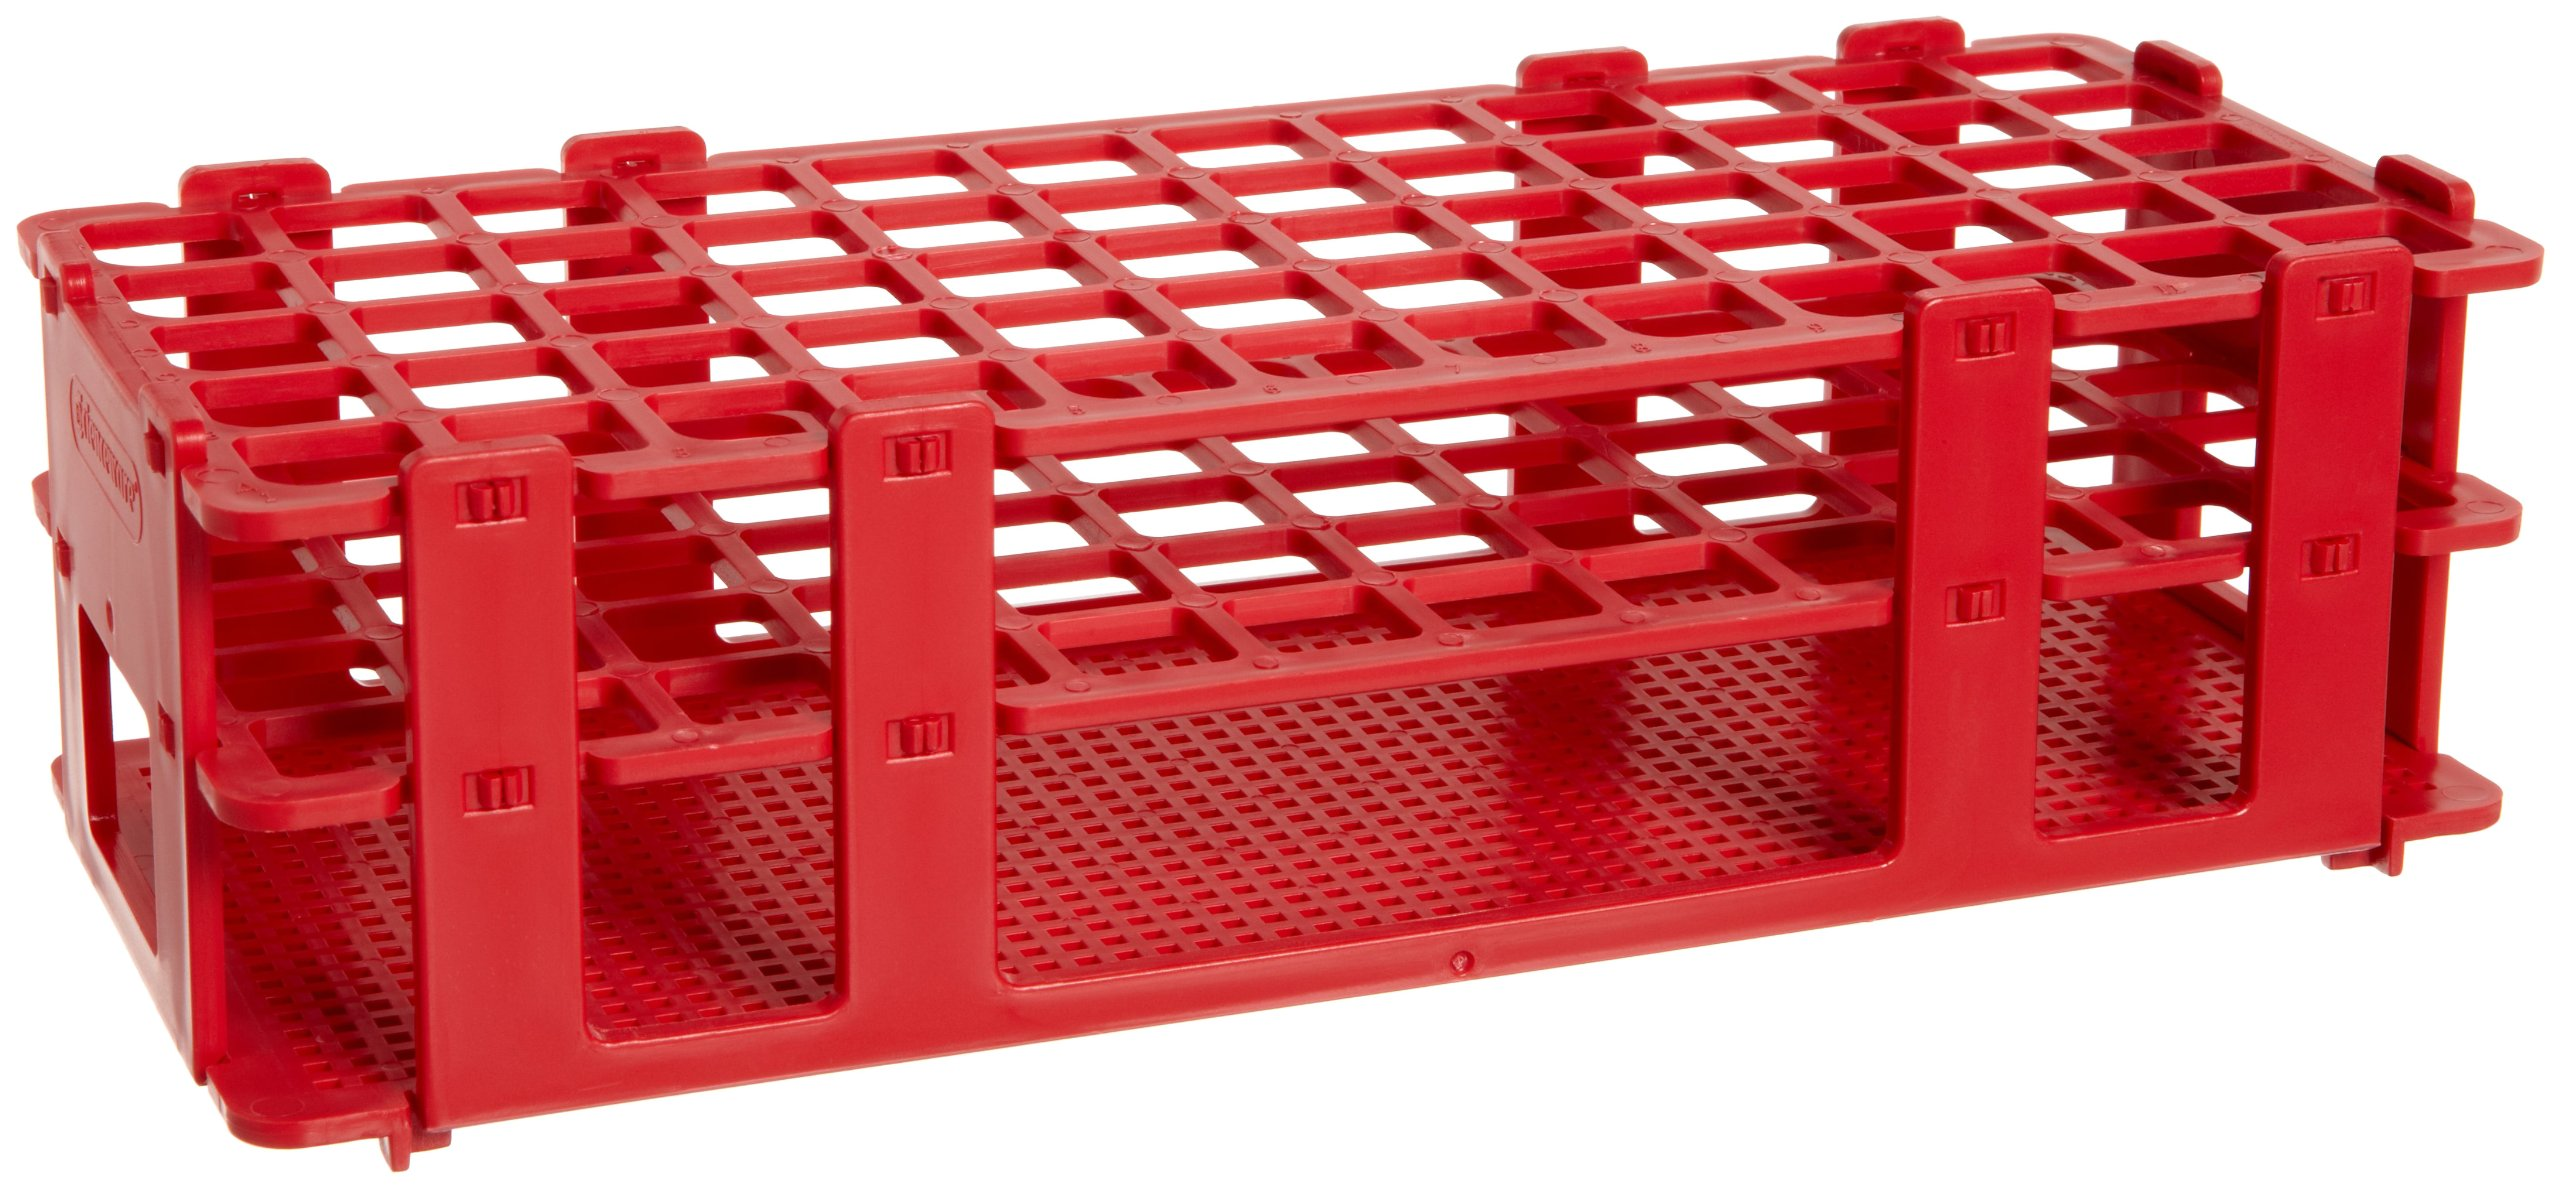 Bel-Art F18746-0001 No-Wire Test Tube Rack; 13-16mm, 60 Places, 9.7 x 4.1 x 2.5 in., Polypropylene, Red